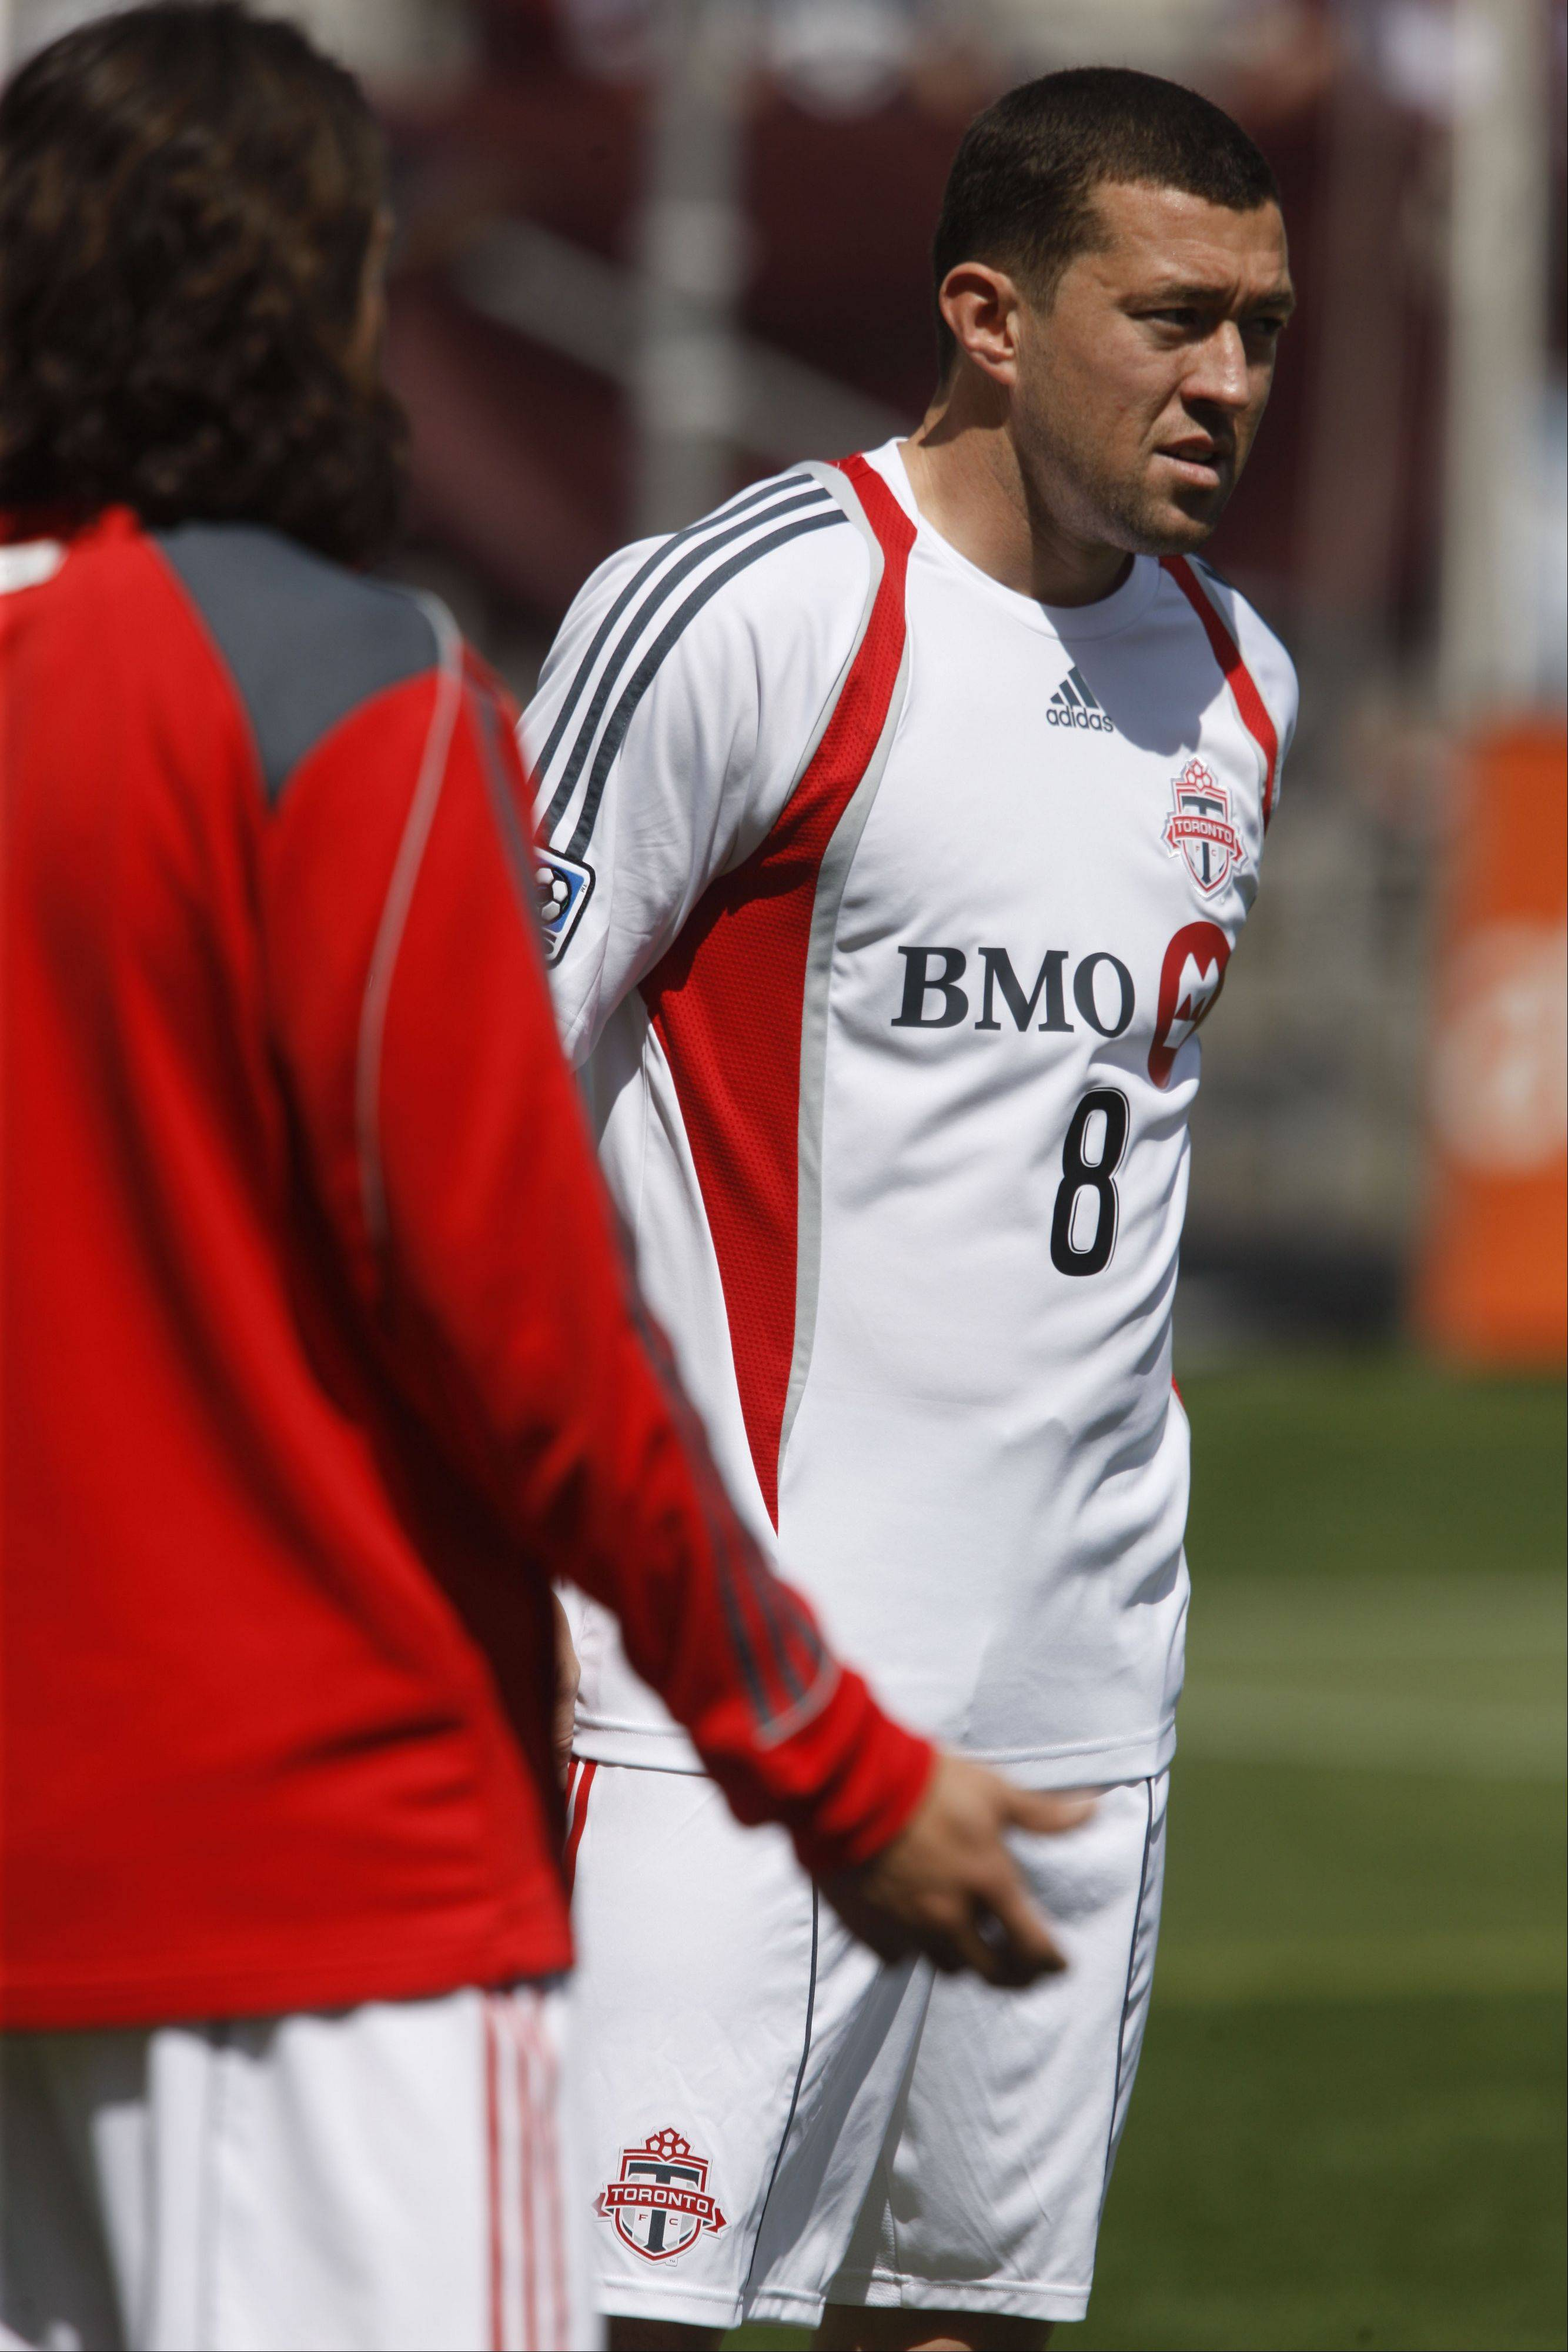 Toronto FC player Dan Gargan, right, is now a member of the Chicago Fire, which got Gargan and a draft pick in exchange for defender Dasan Robinson.